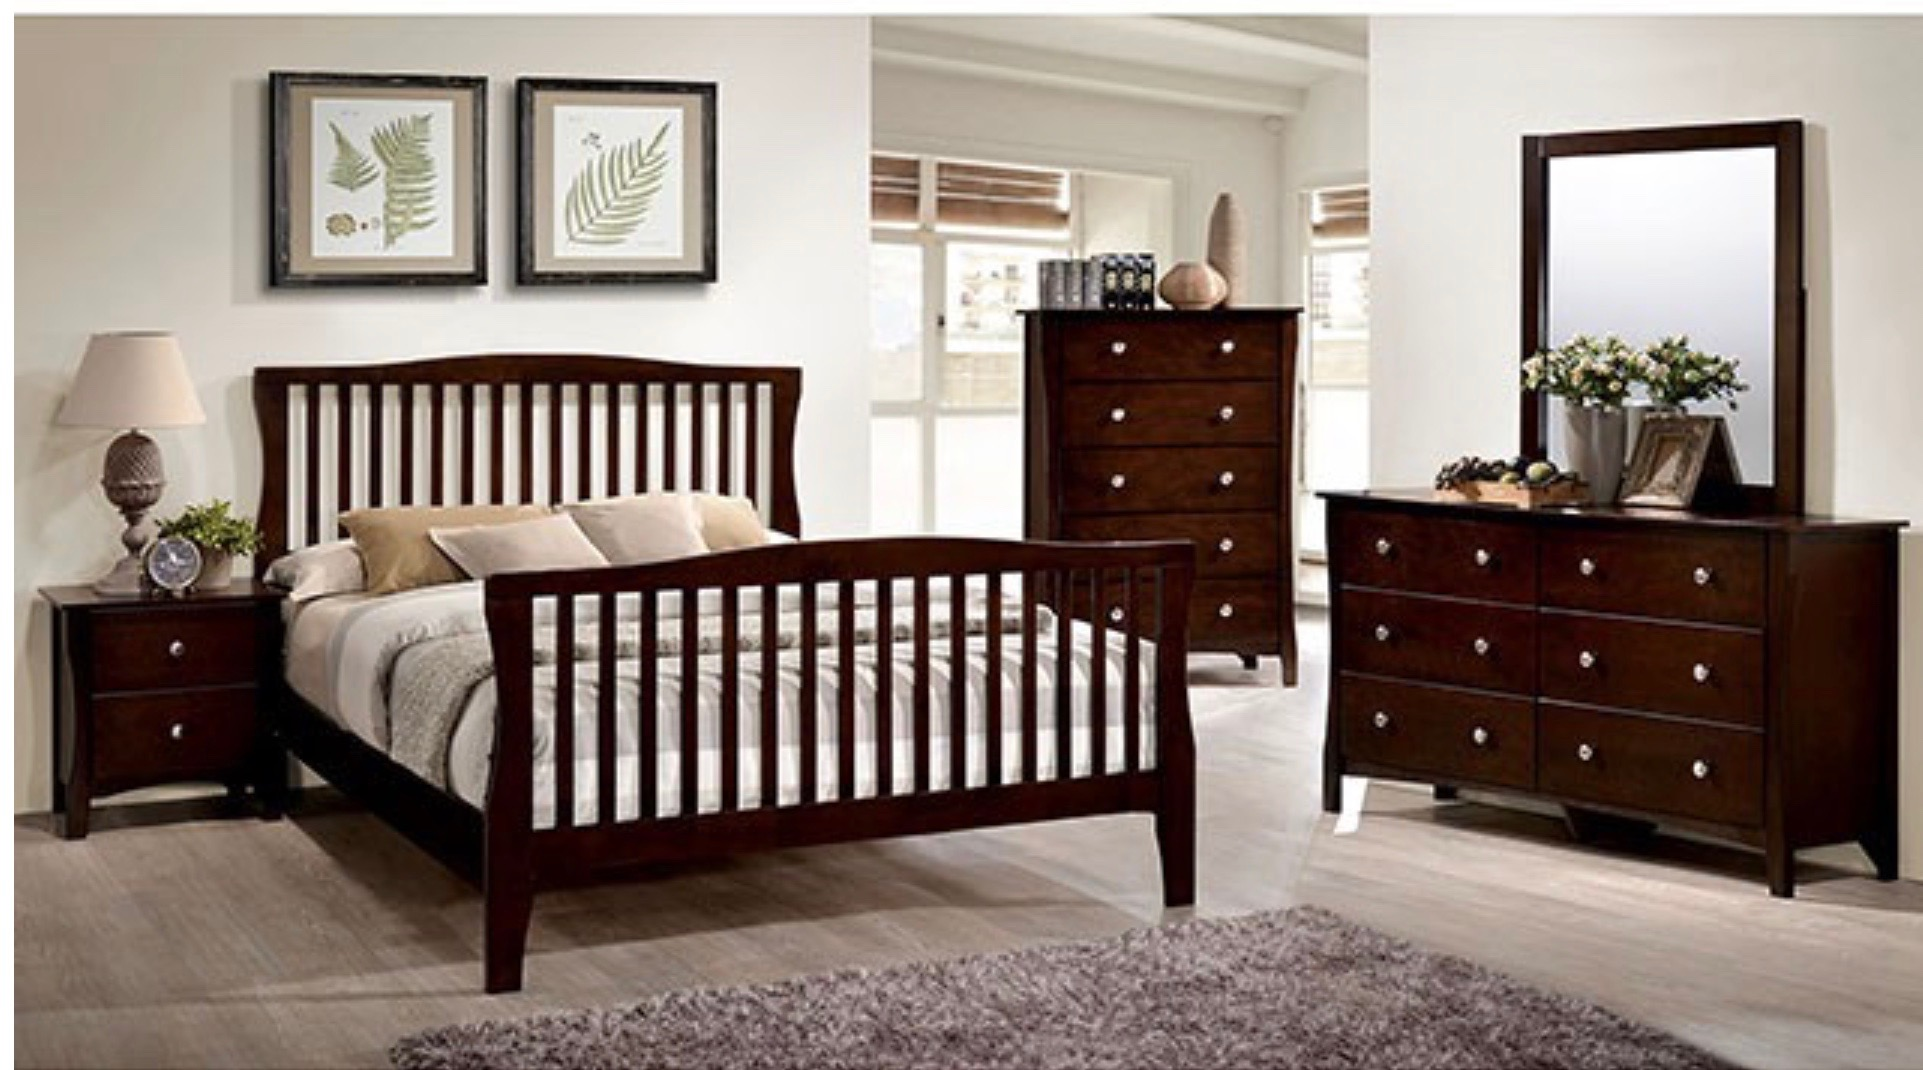 BEDROOM SET $899